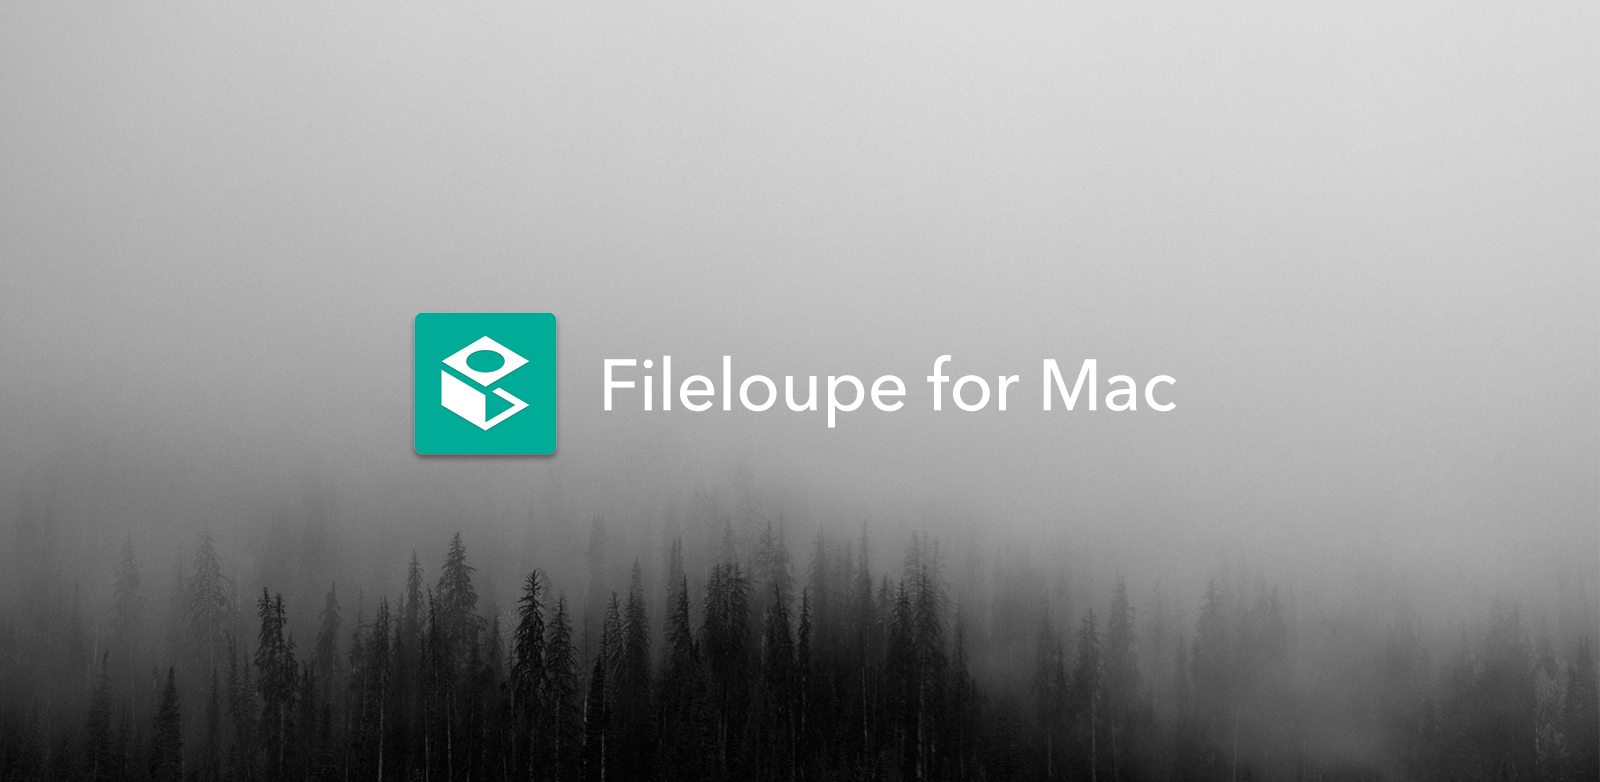 Finder 和预览的延伸,强大实用的文件浏览器:Fileloupe for Mac